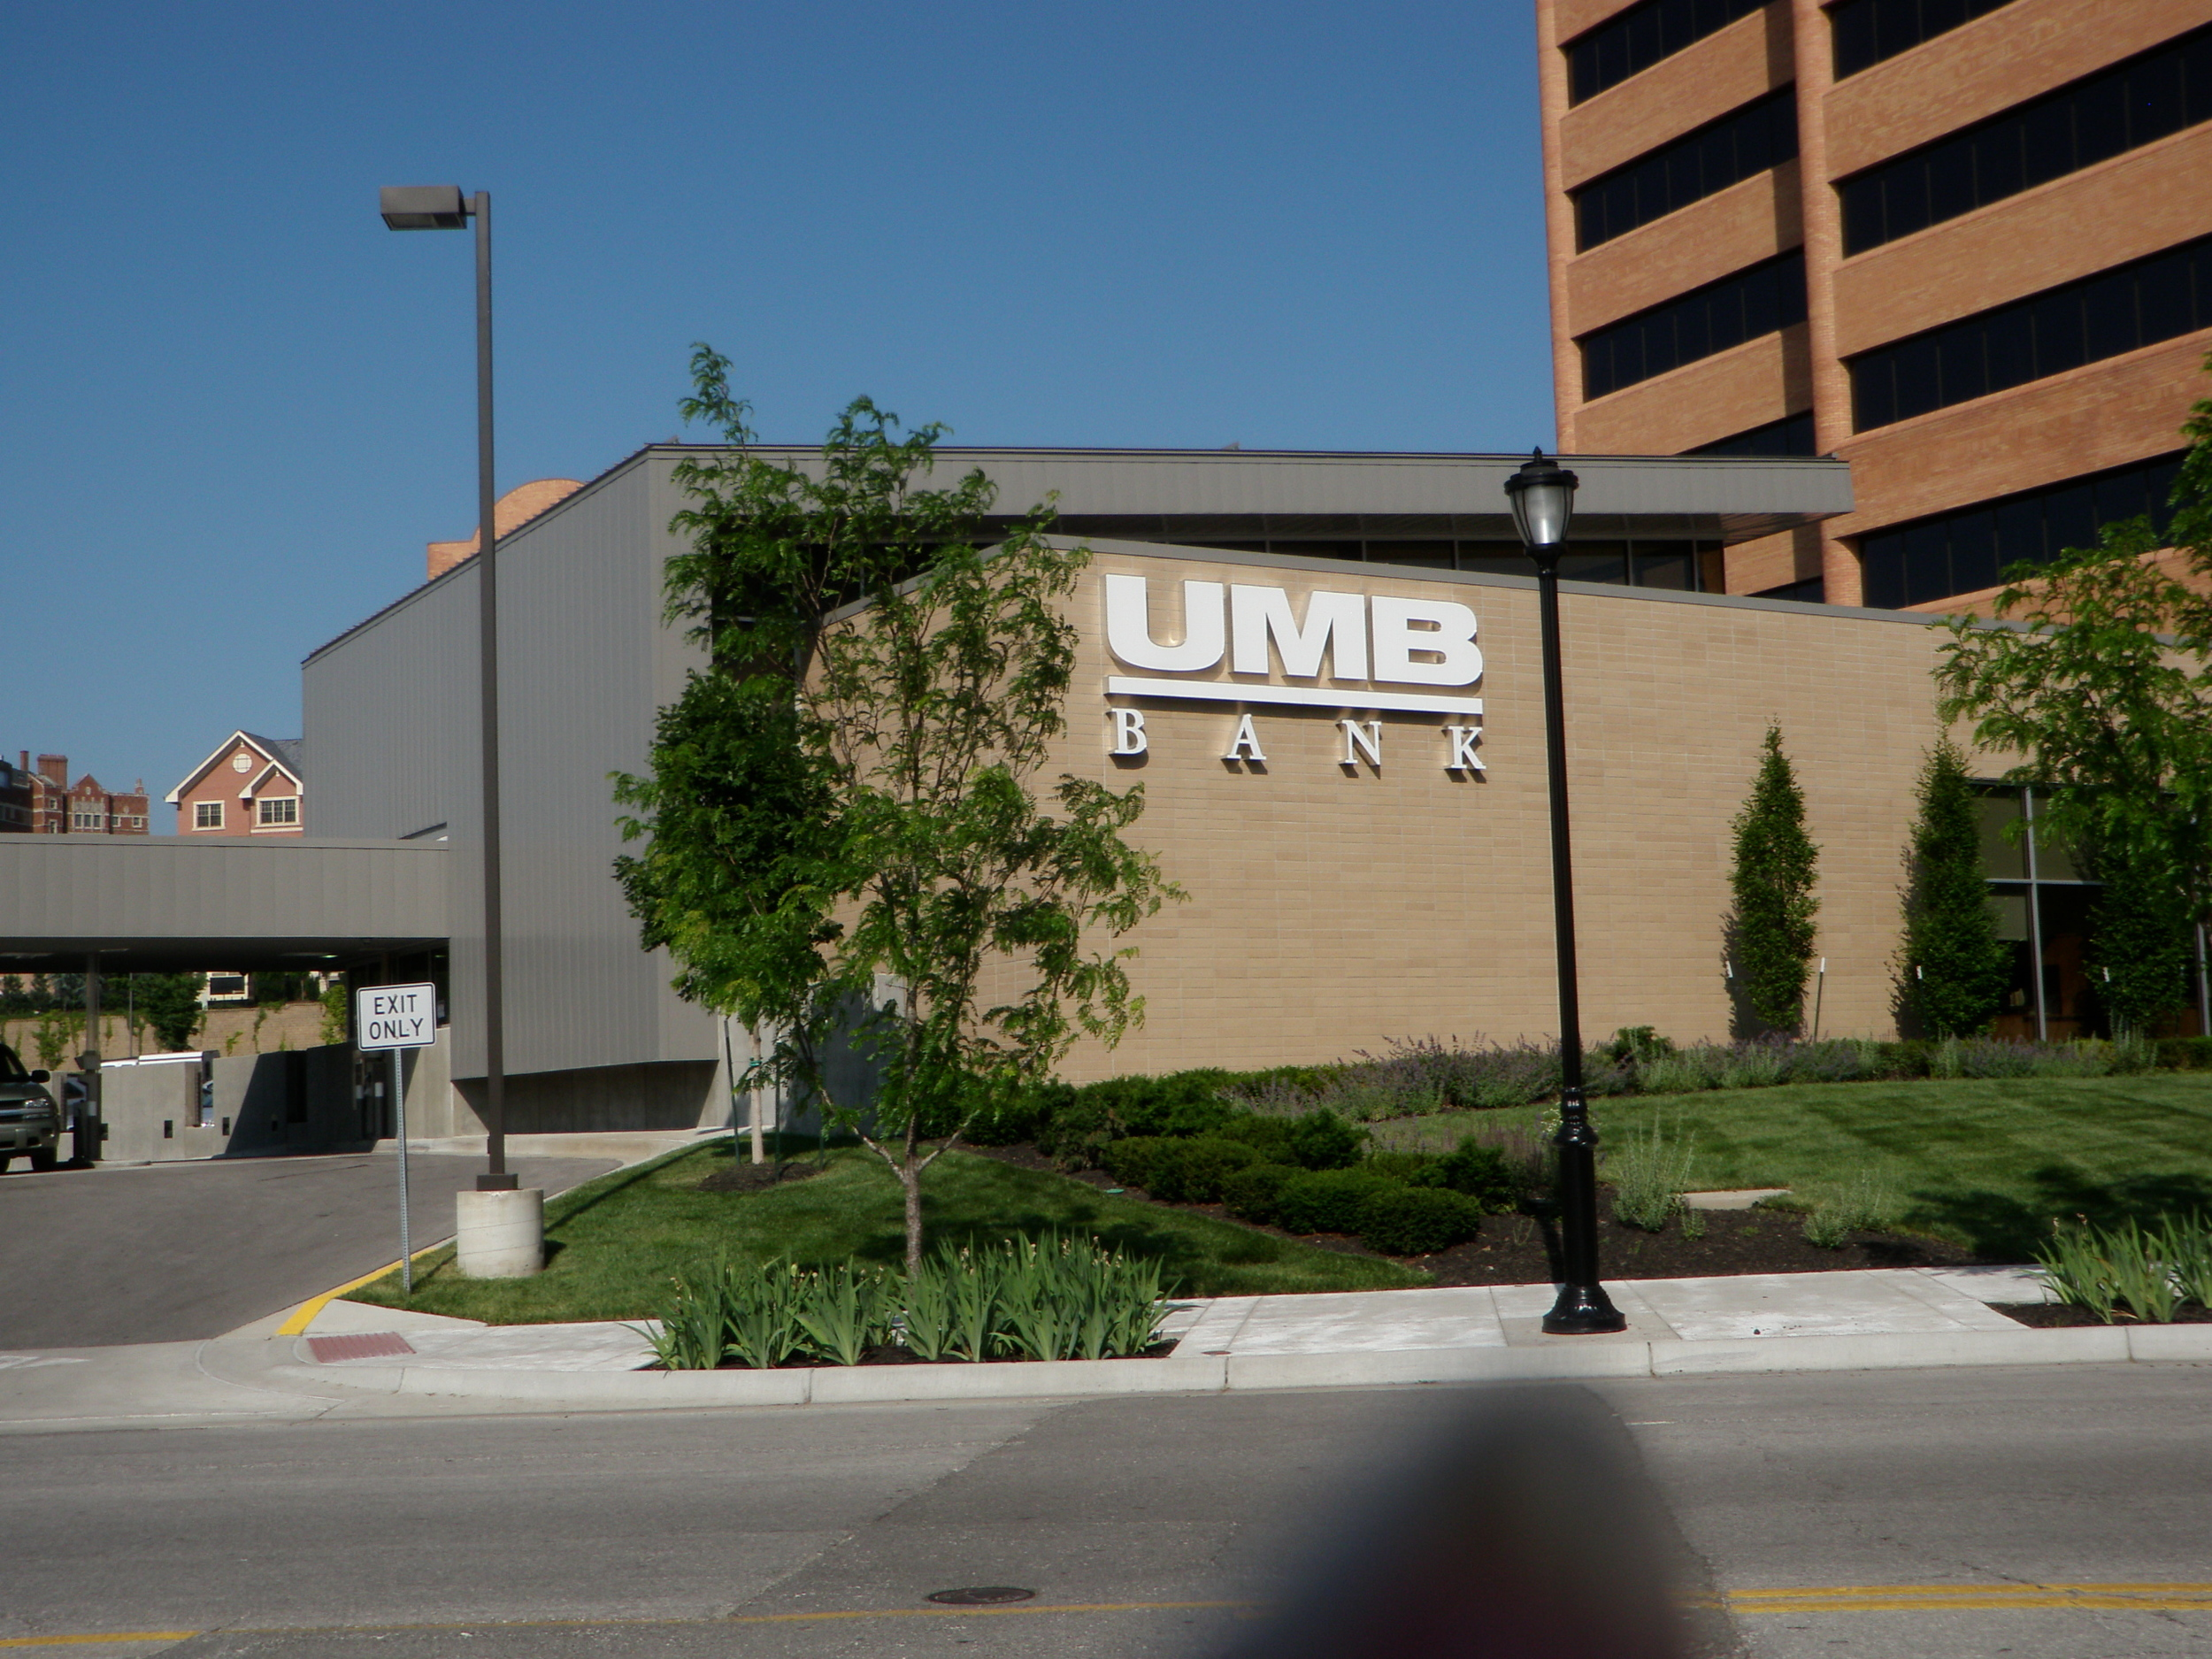 UMB Bank at 4900 Main St